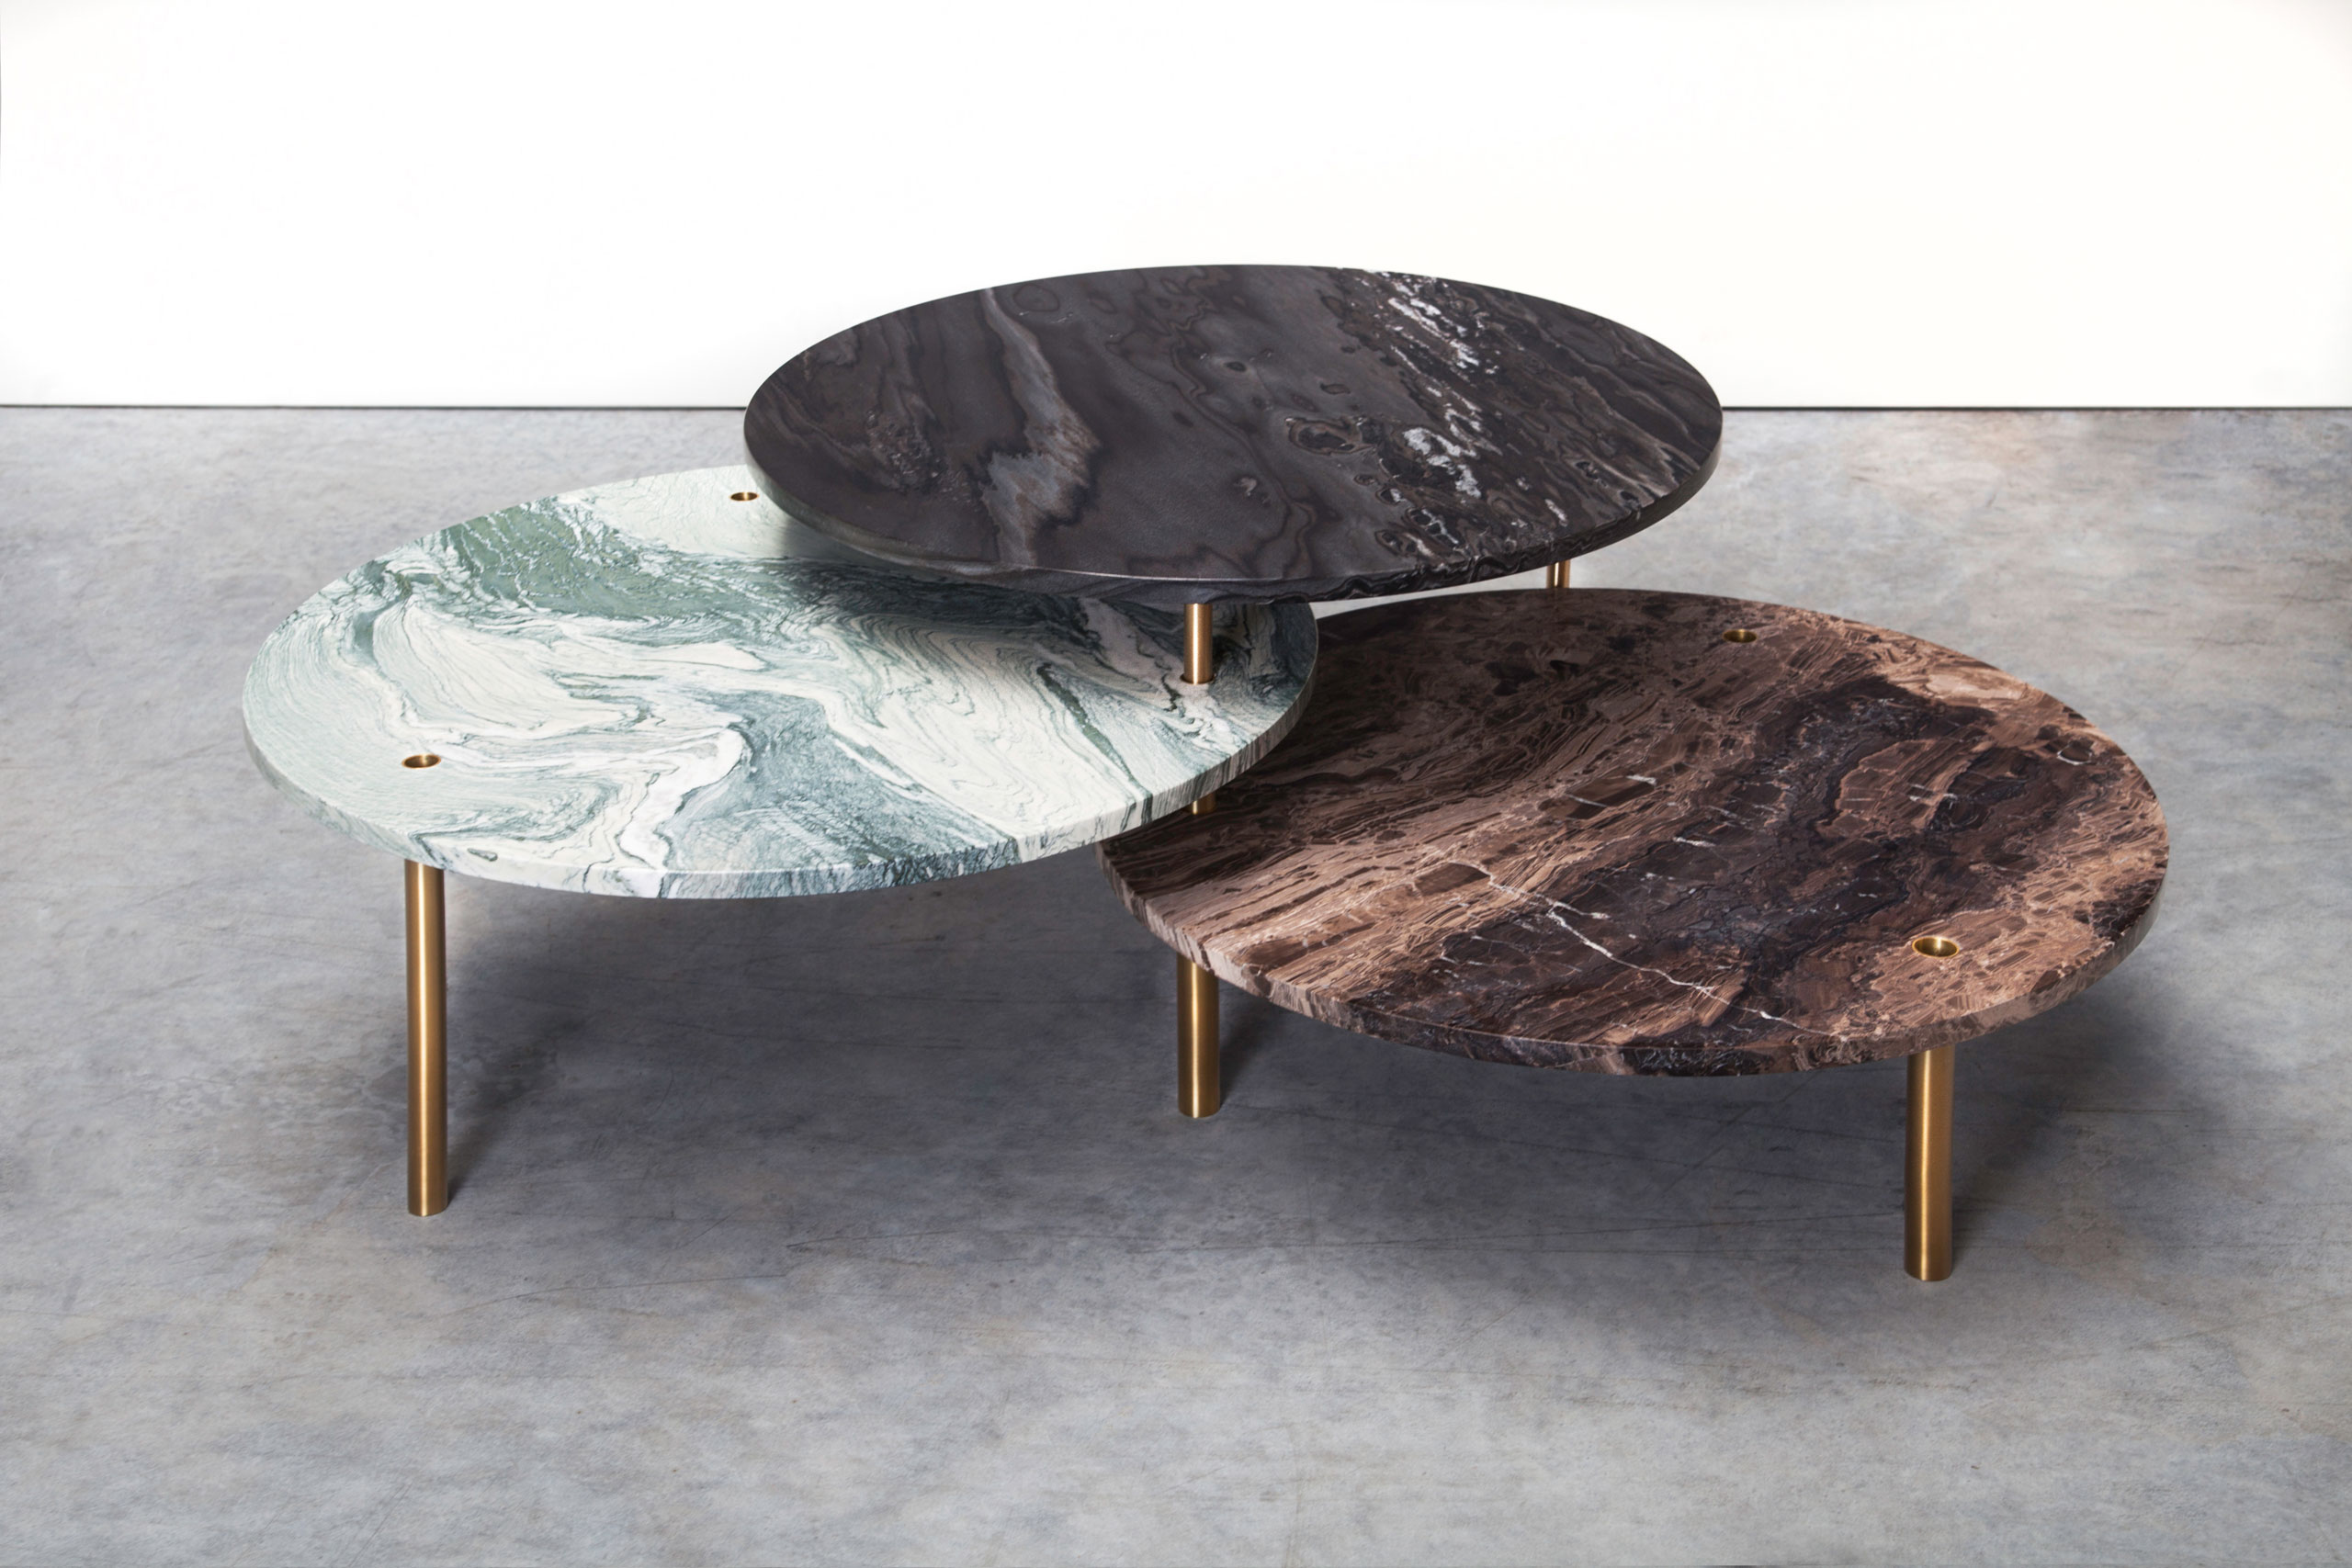 Tectonic Series low table by Maarten de Ceulaer for Nilufar Gallery. Photo by Teri Romkey.